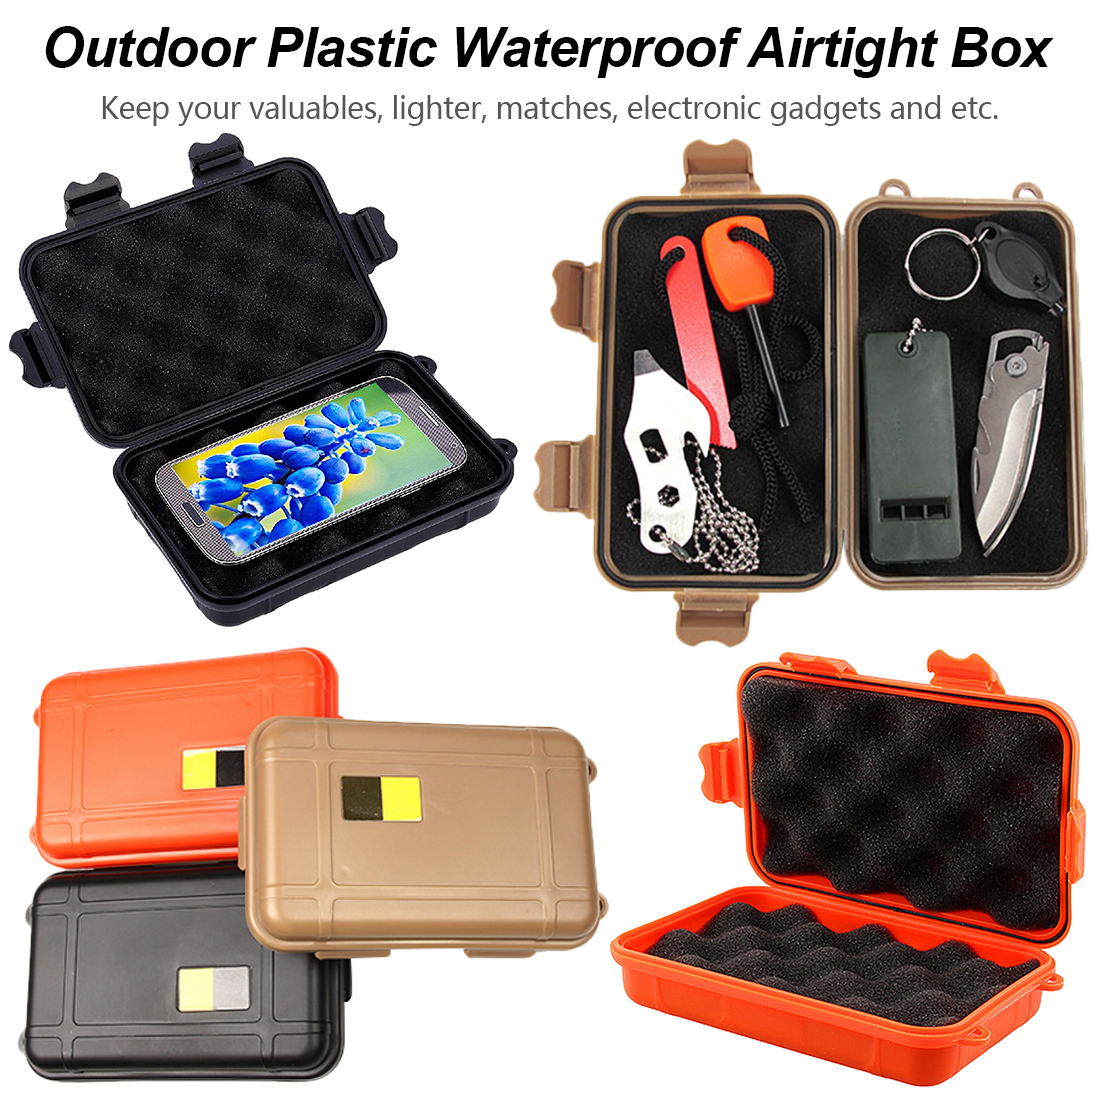 1pcs Outdoor Nylon Waterproof Airtight Survival Case Container Storage Carry Box